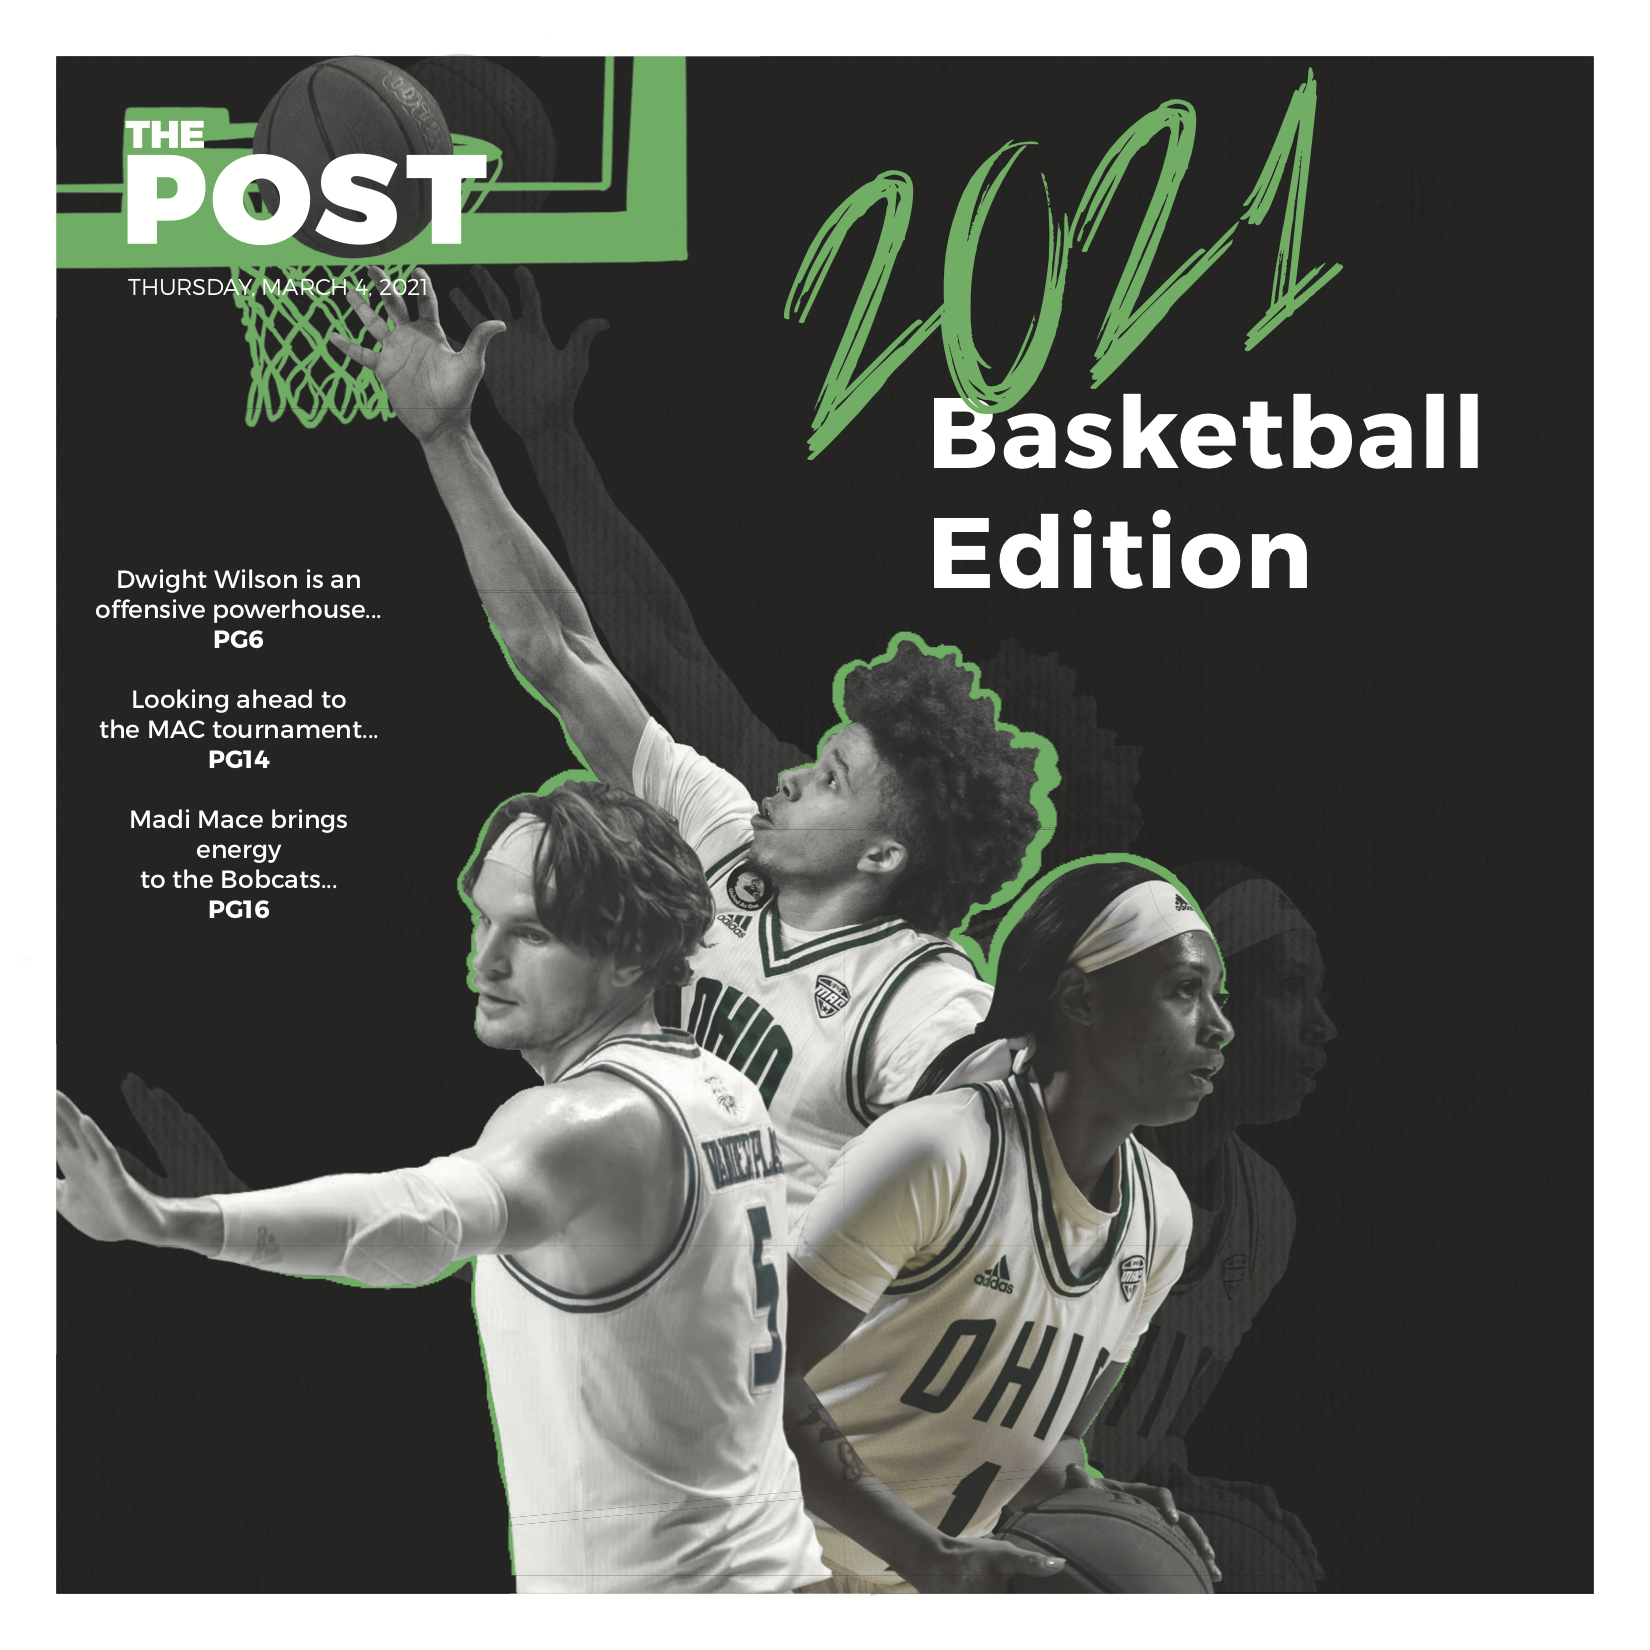 Basketball Landing Page Cover Image